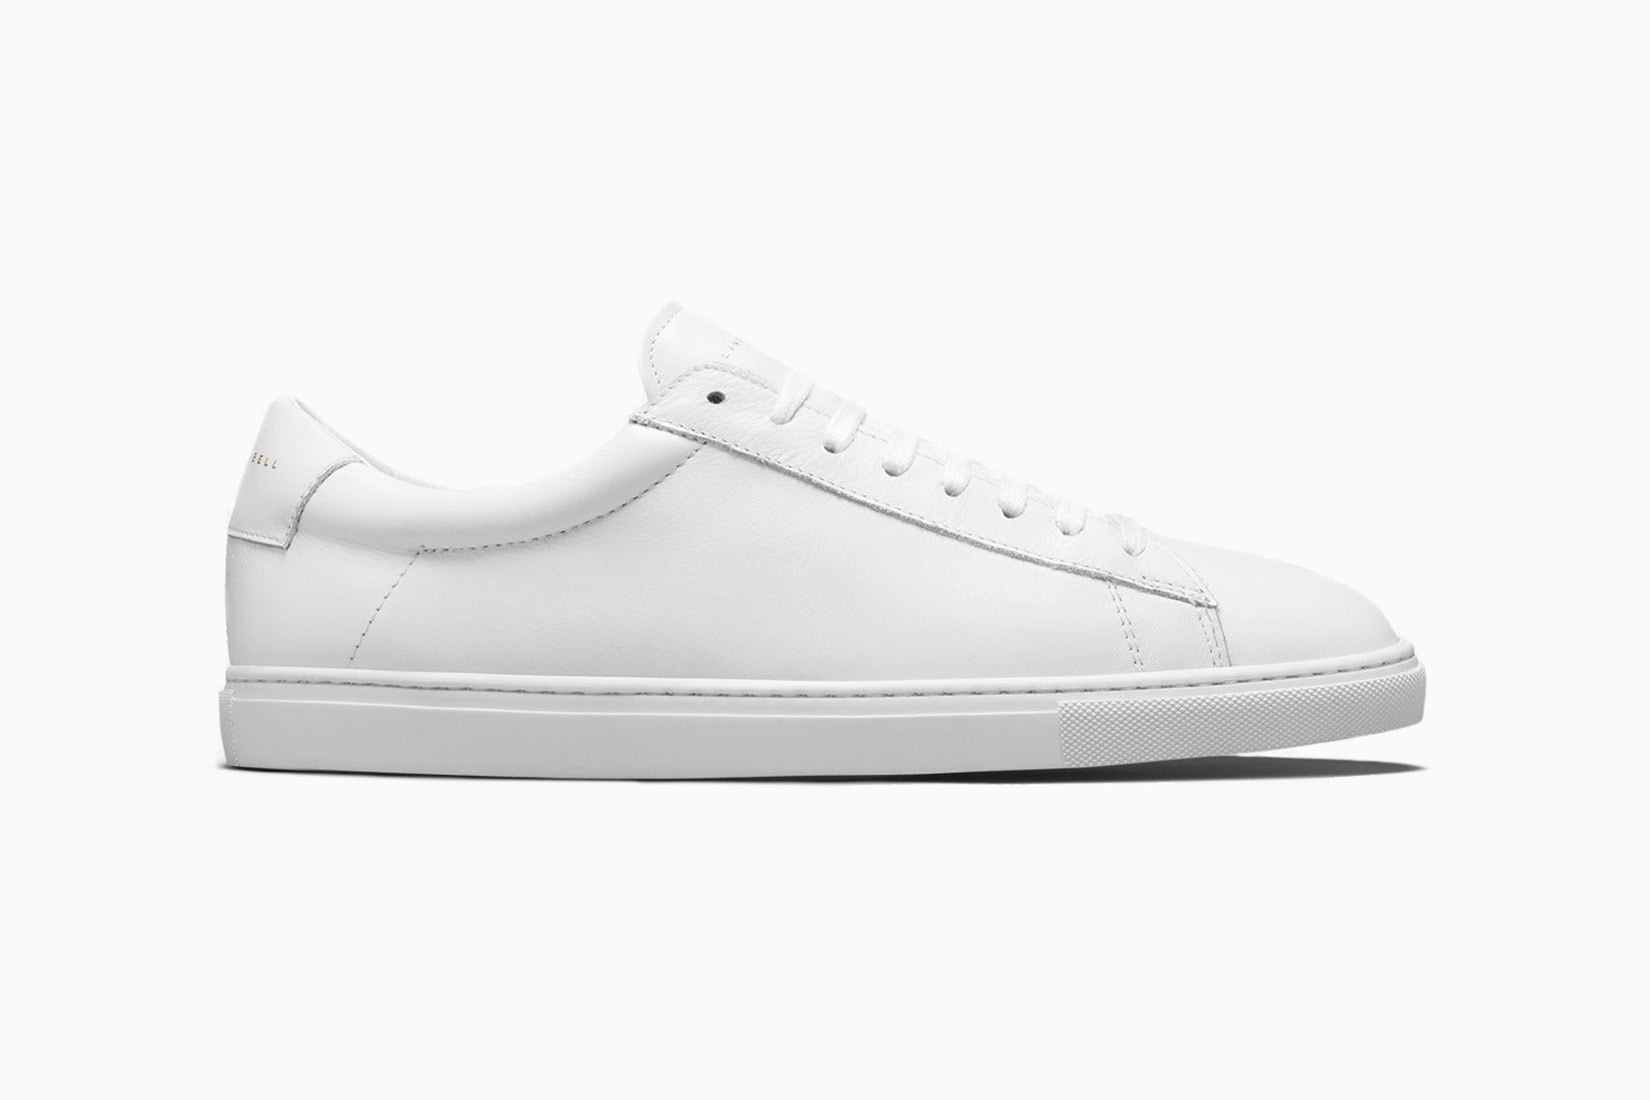 best women walking shoes oliver cabell low top sneakers - Luxe Digital